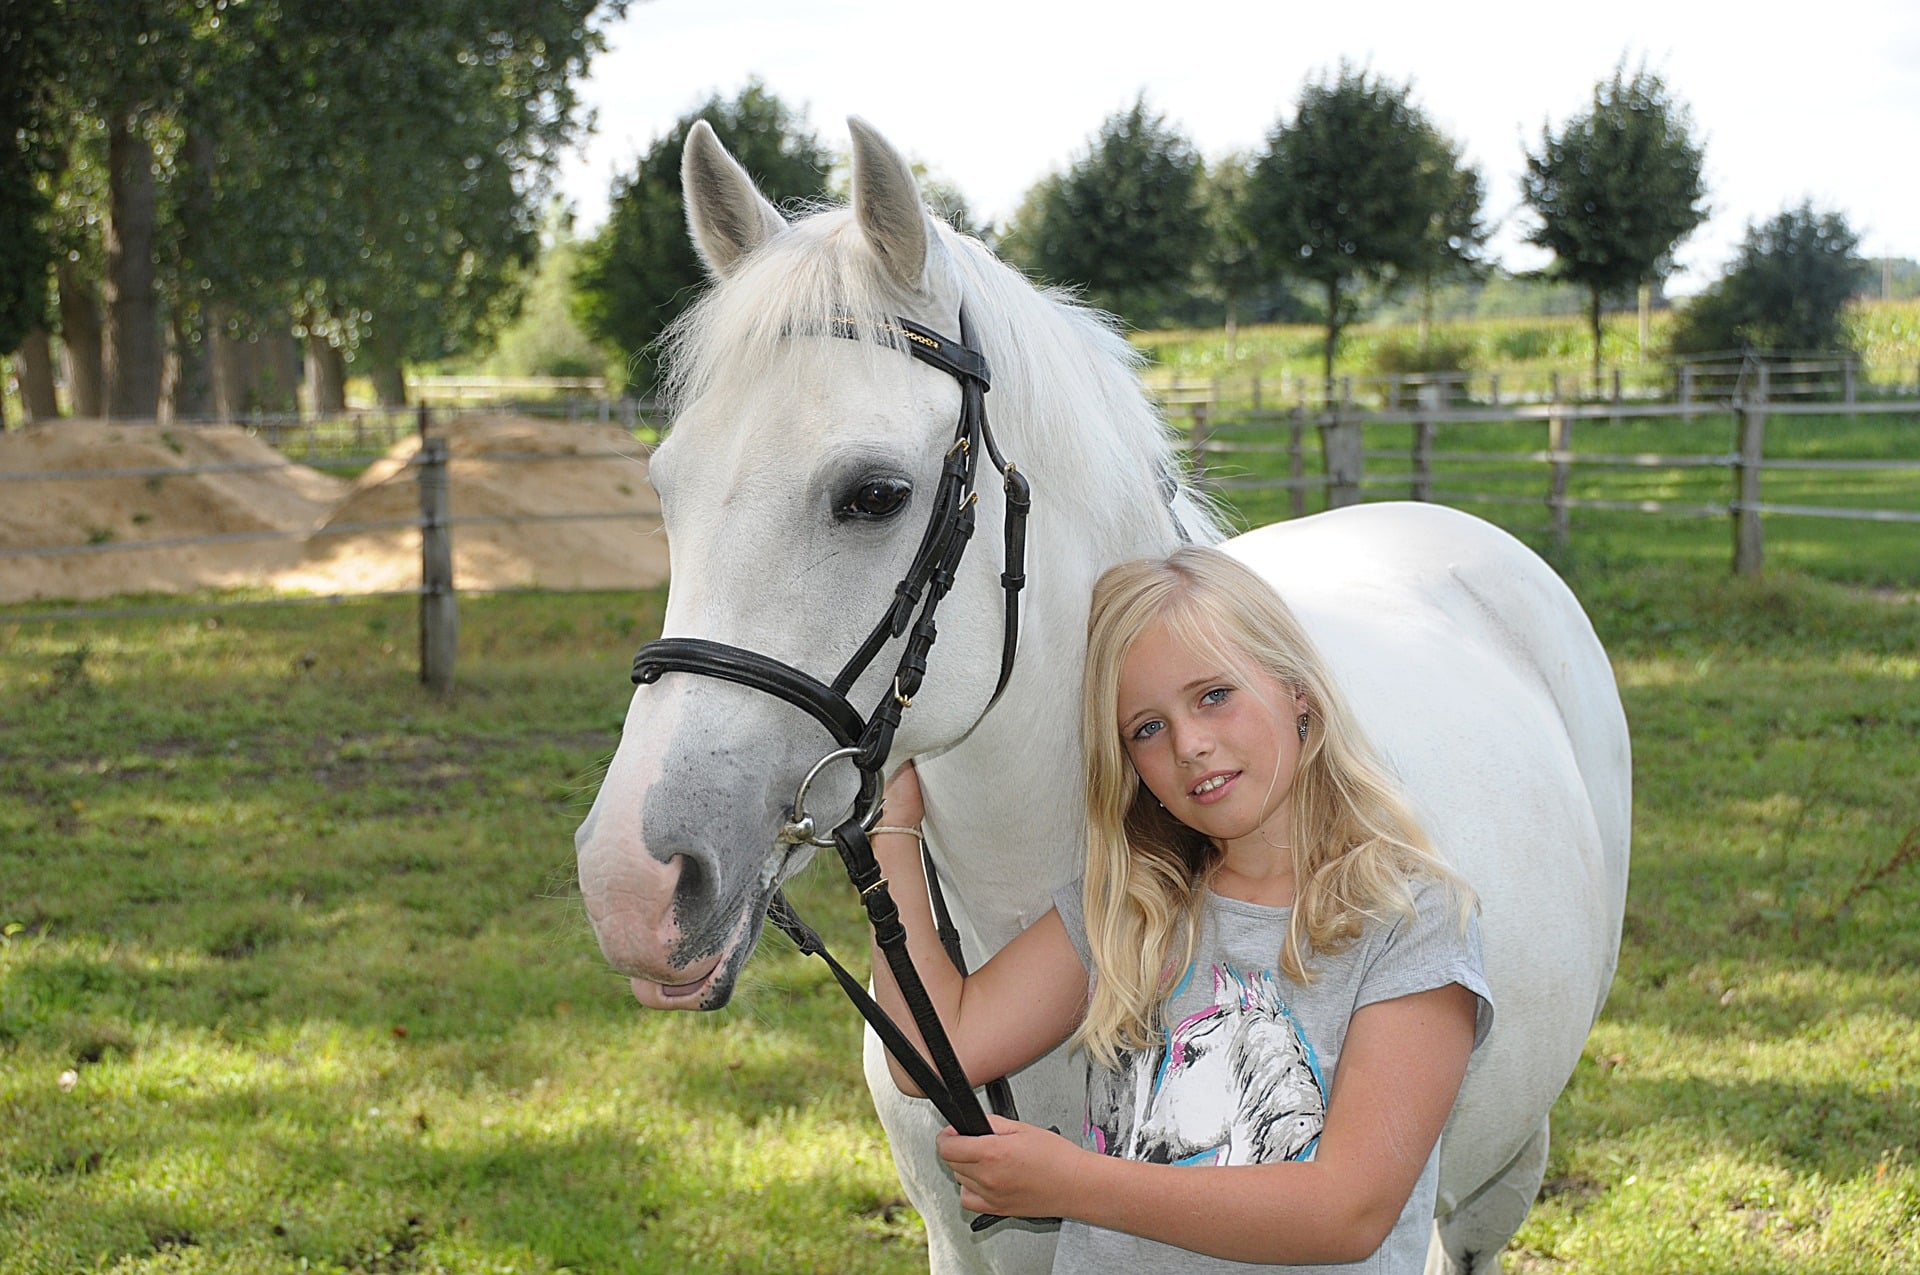 your daughters horse will be her very own